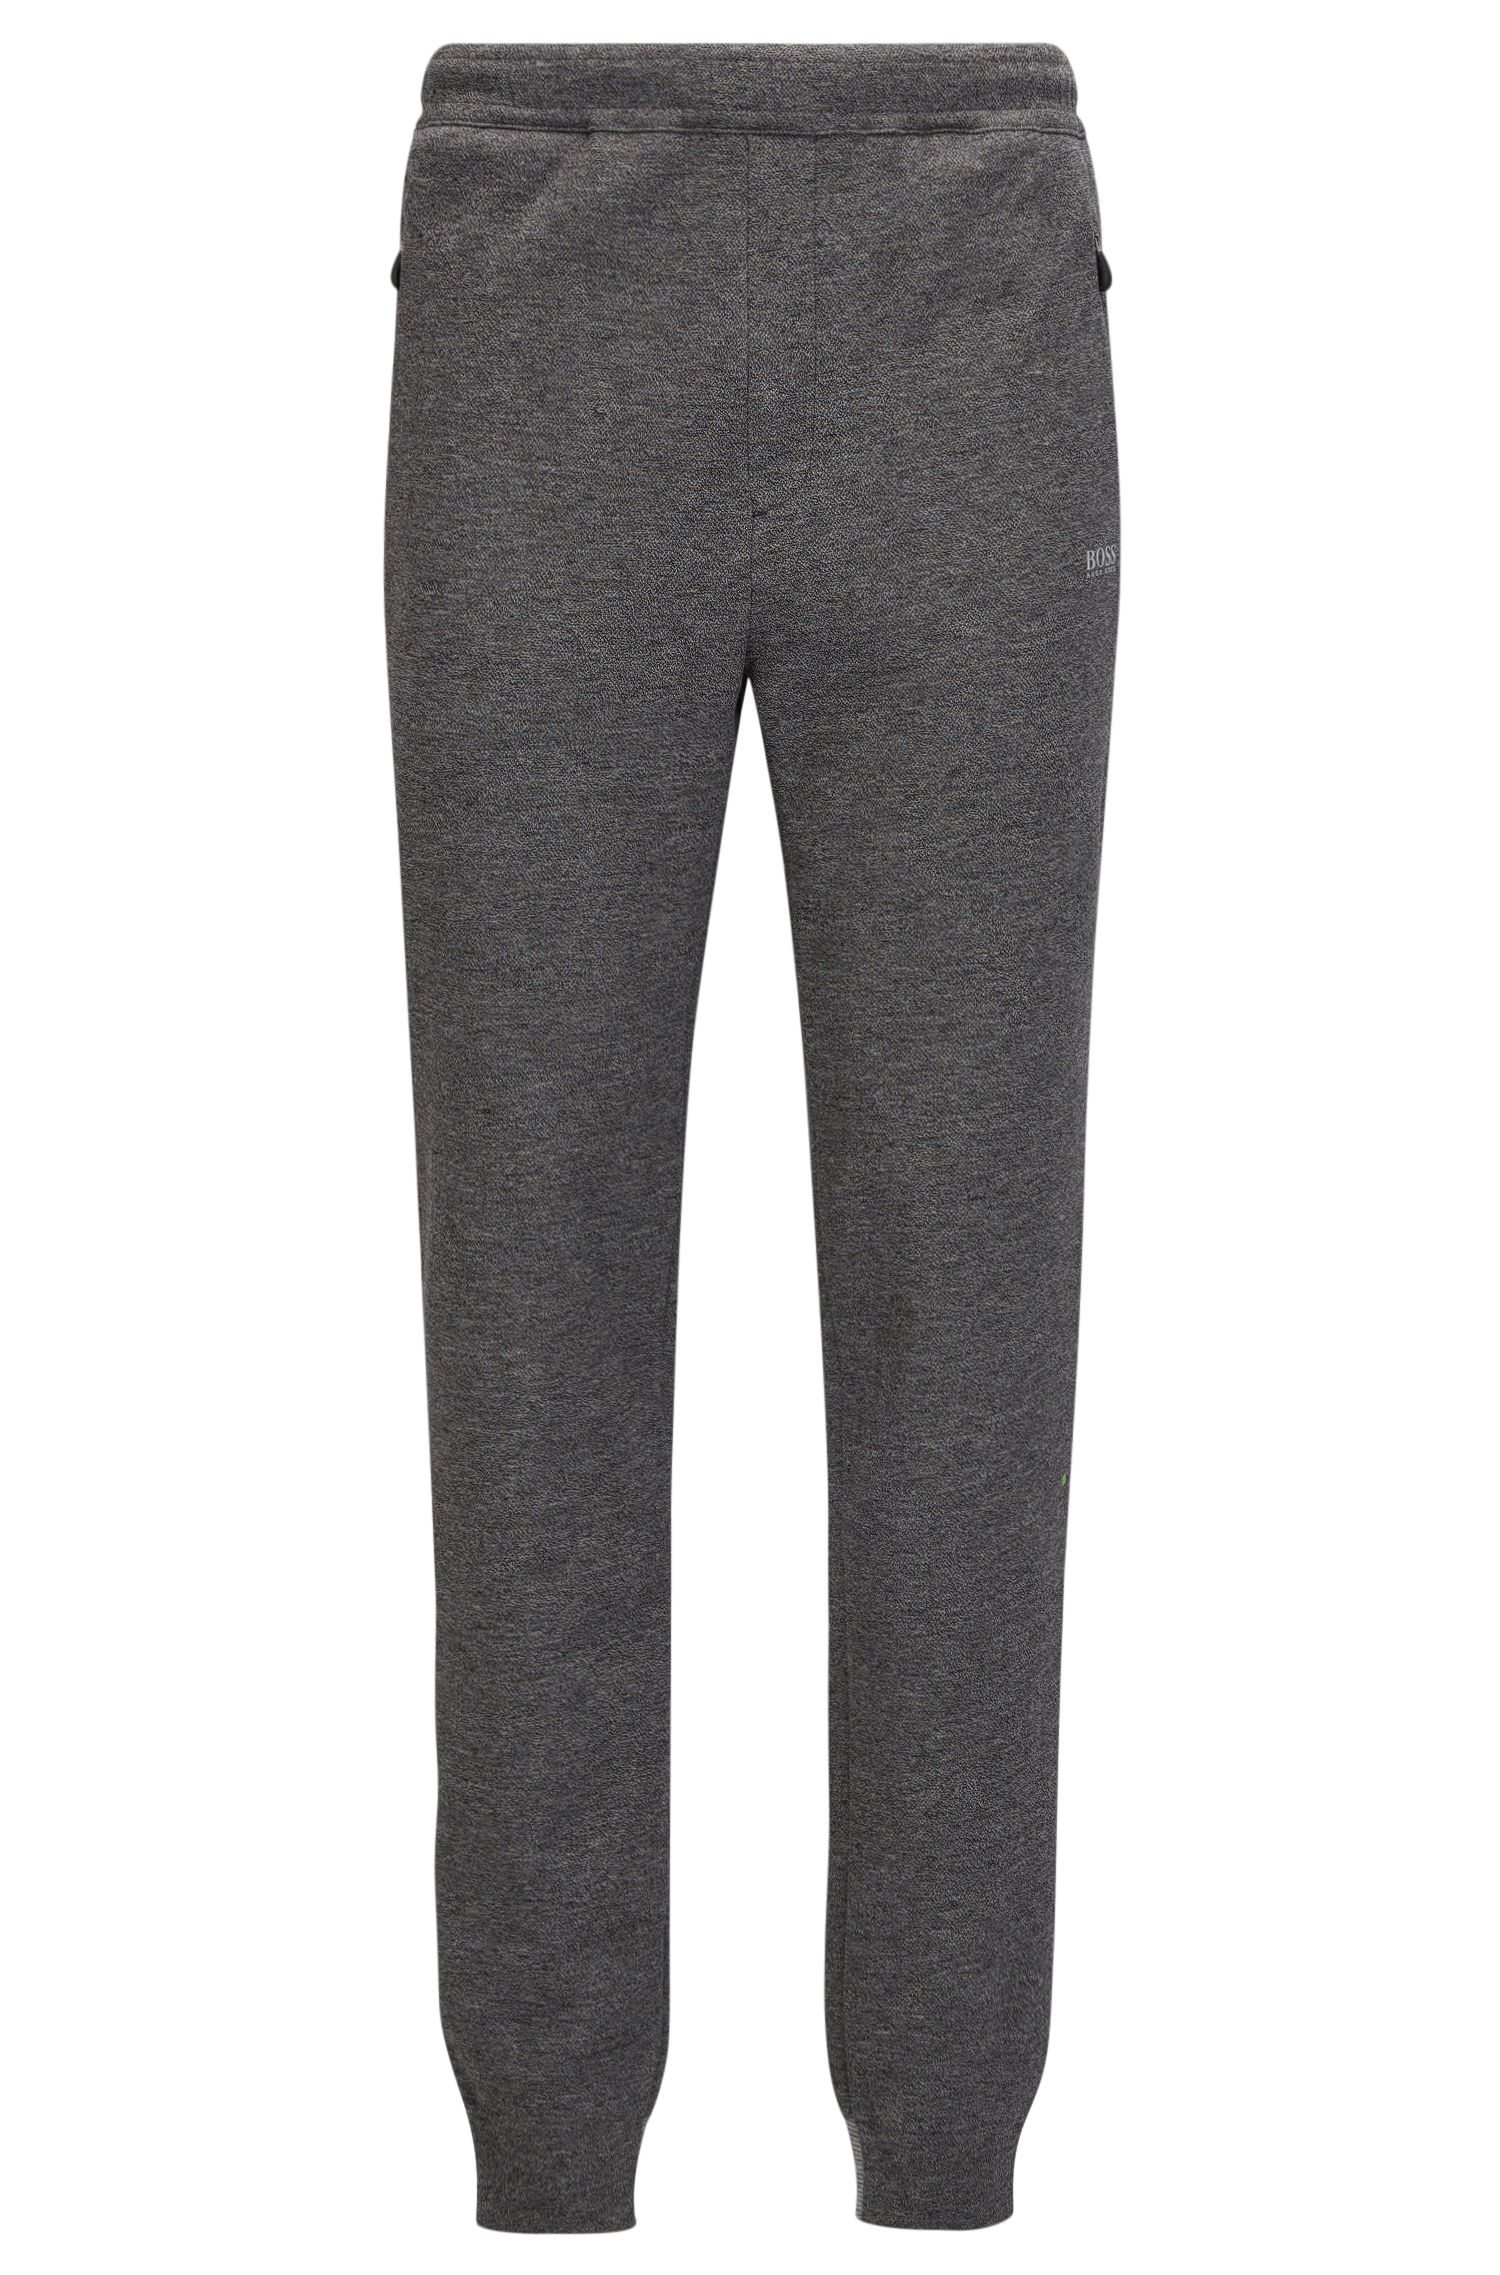 Regular-fit joggingbroek van een katoenmix